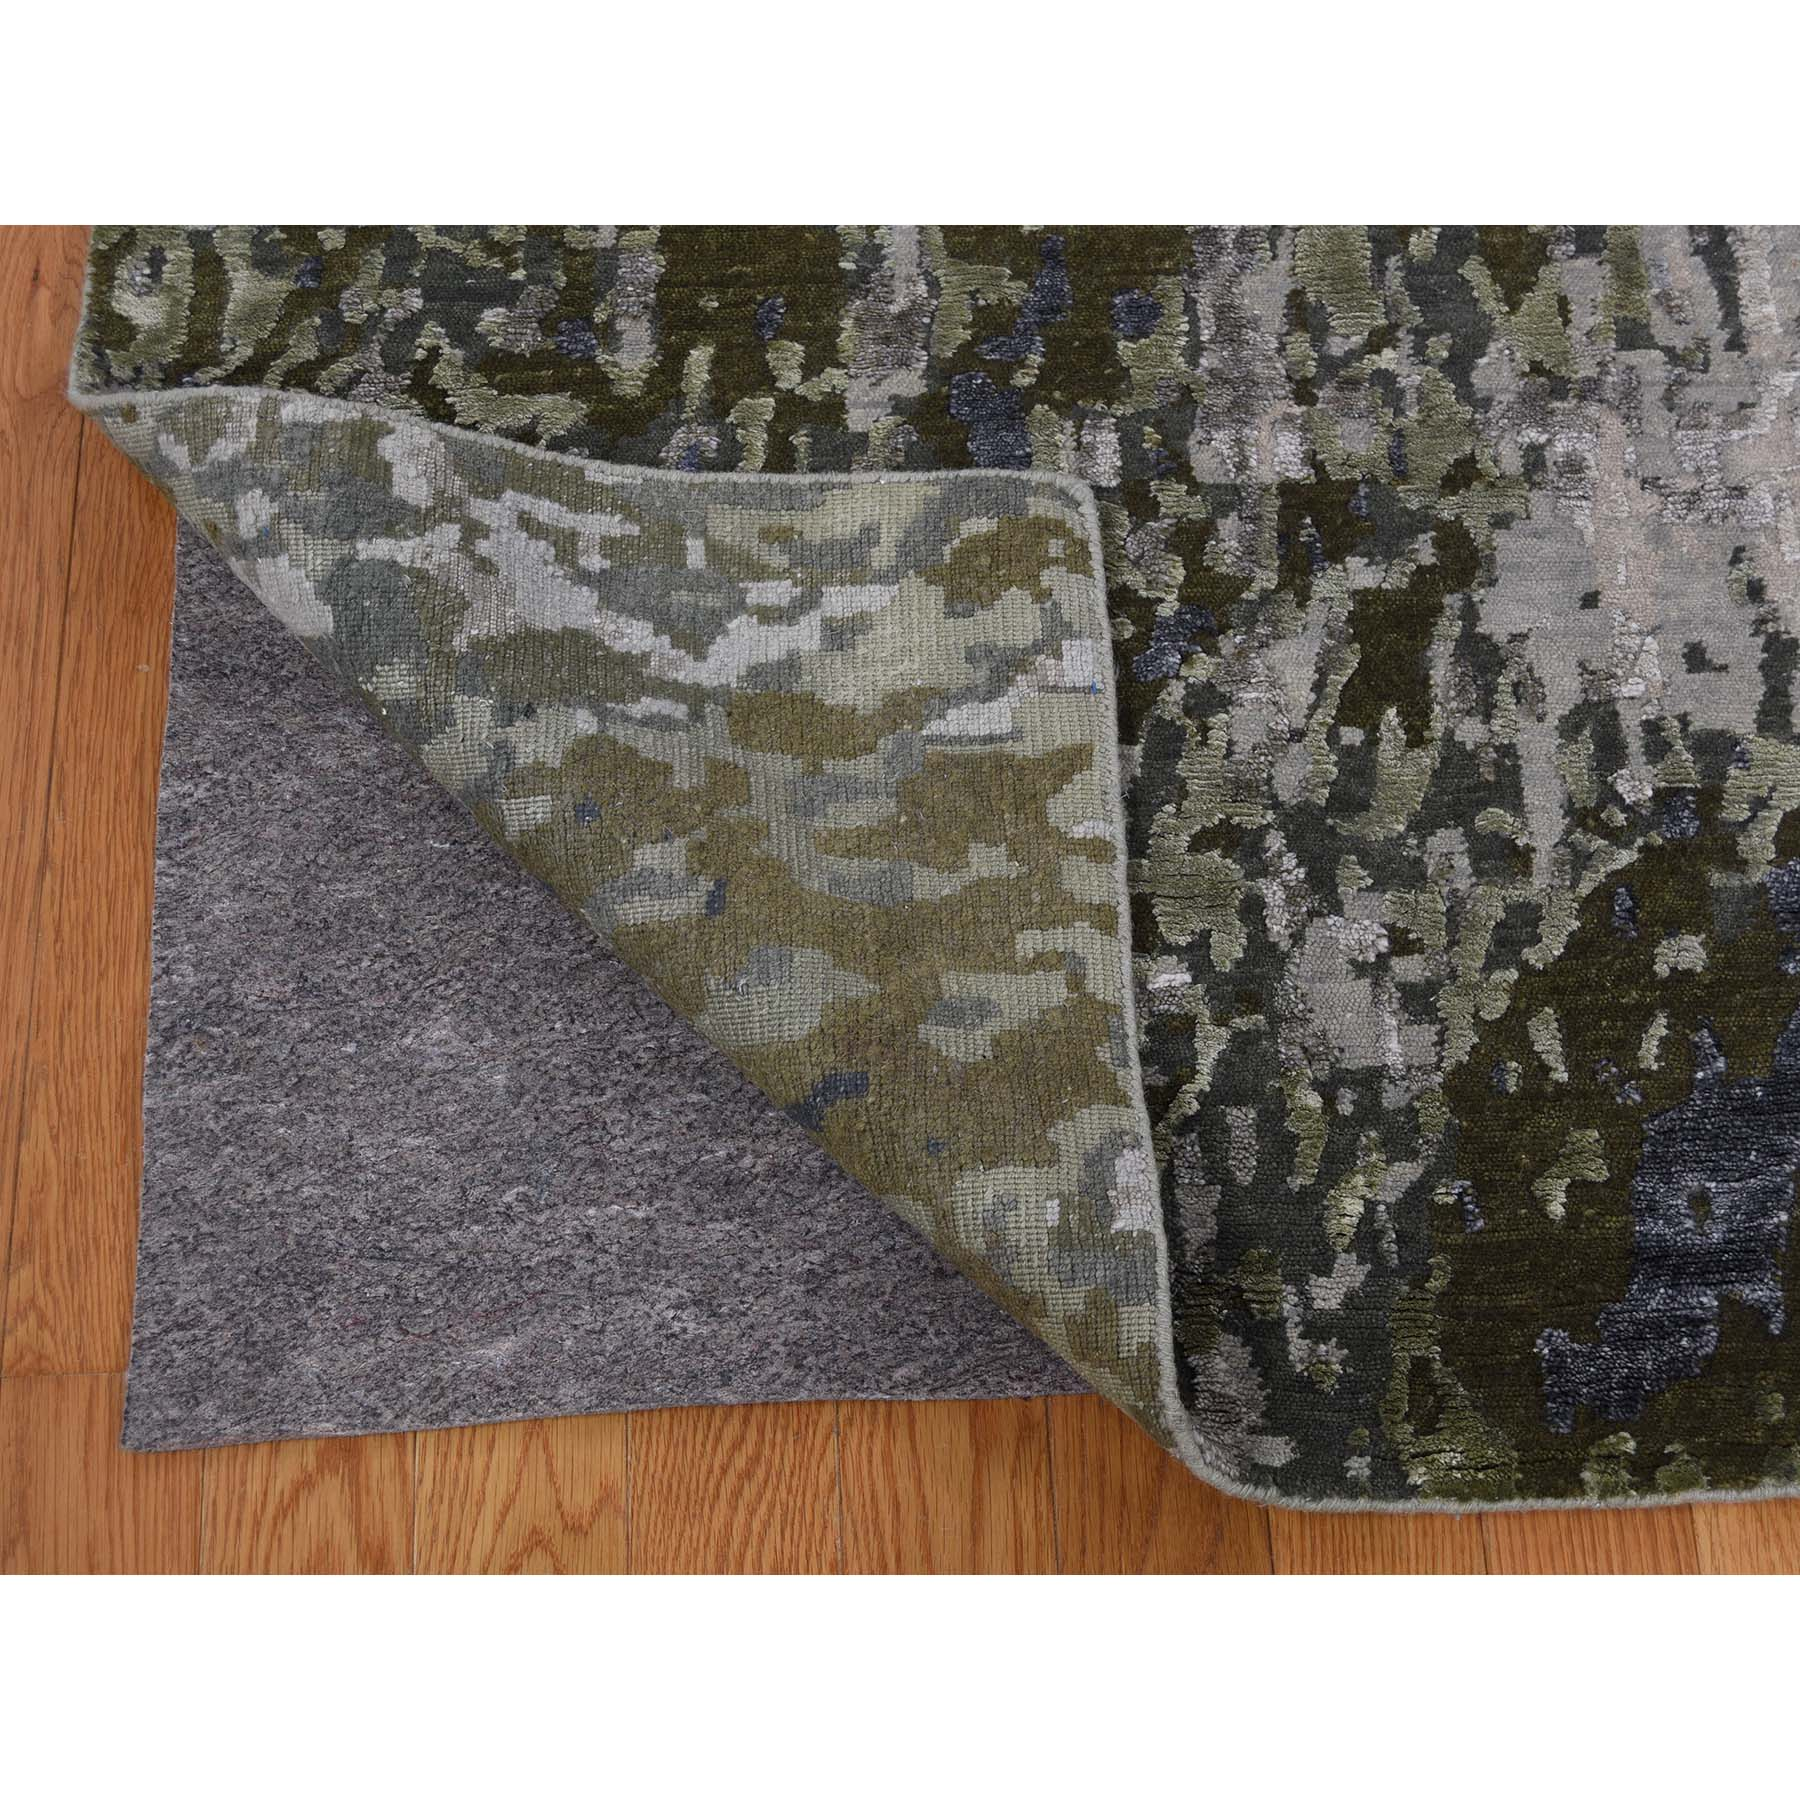 9-x11-9  Hi-Low Pile Modern Abstract Design Wool and Silk Hand Knotted Rug